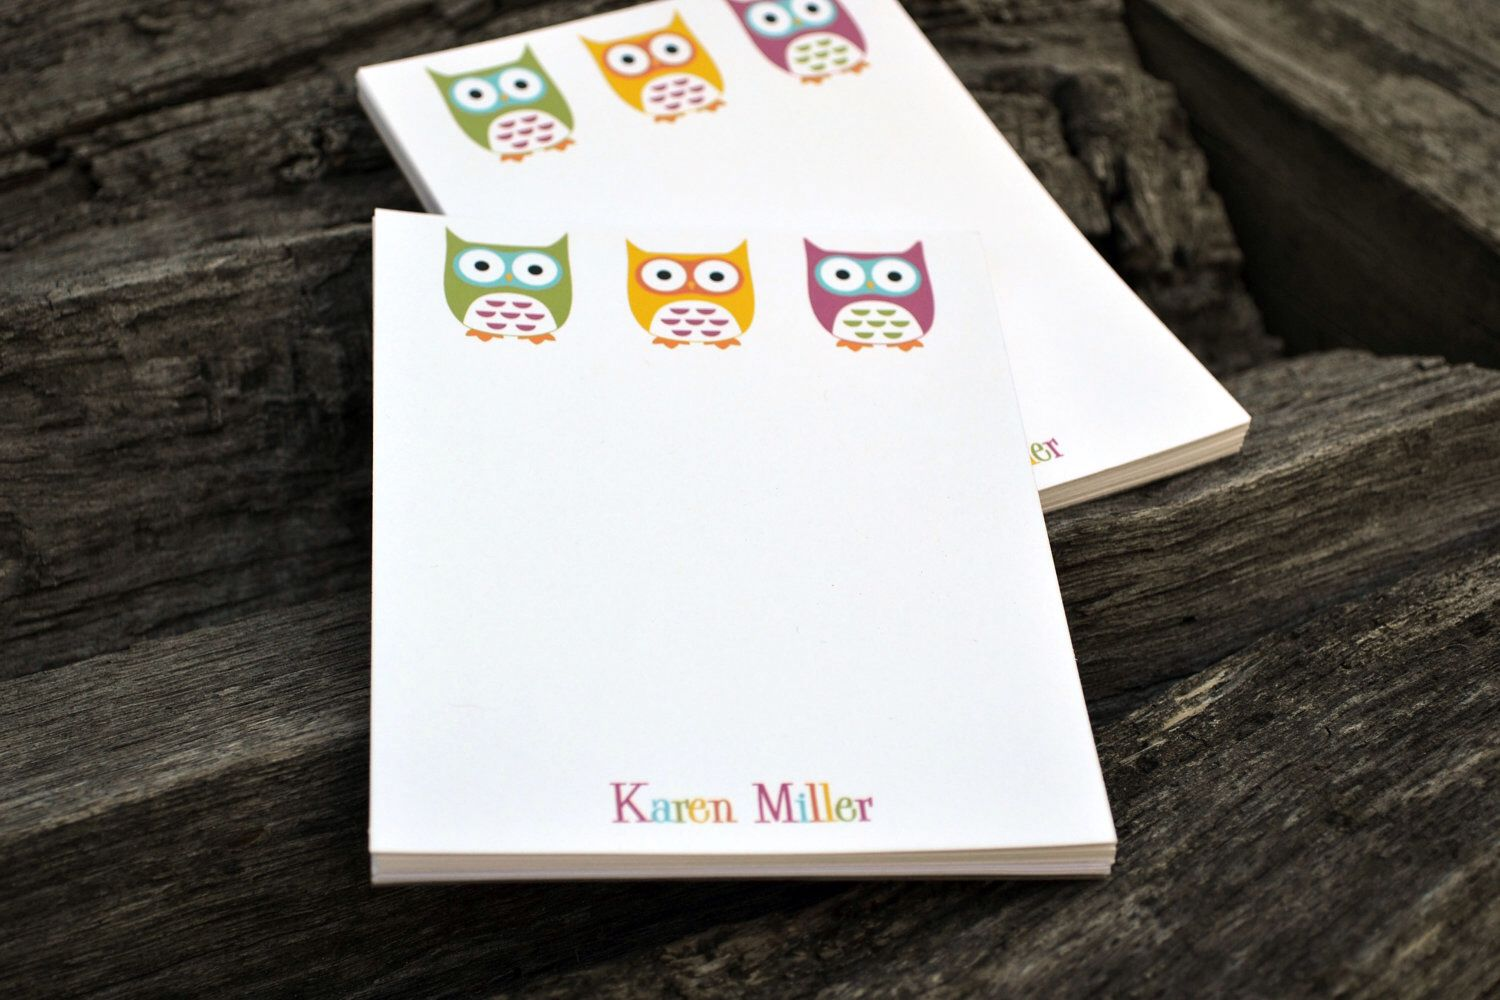 personalized notepads personalized owl notepads personalized